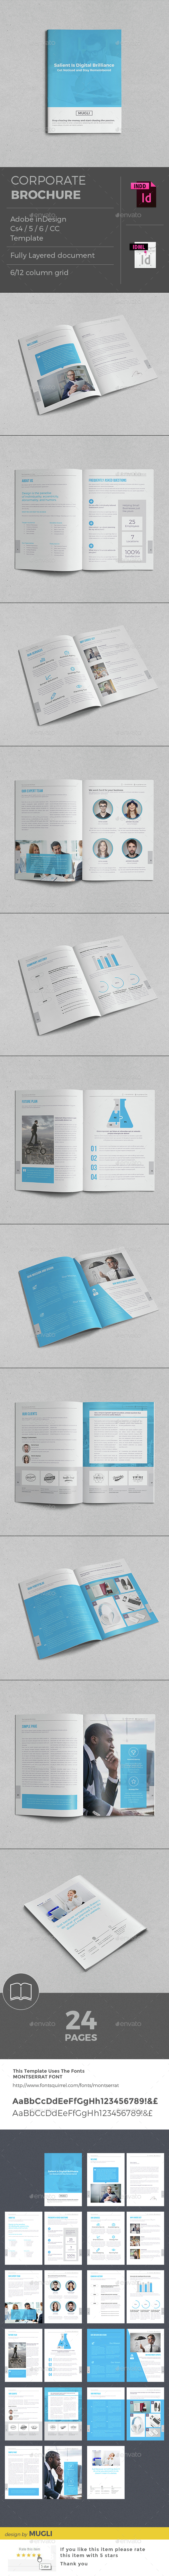 The Business Brochure - Corporate Brochures